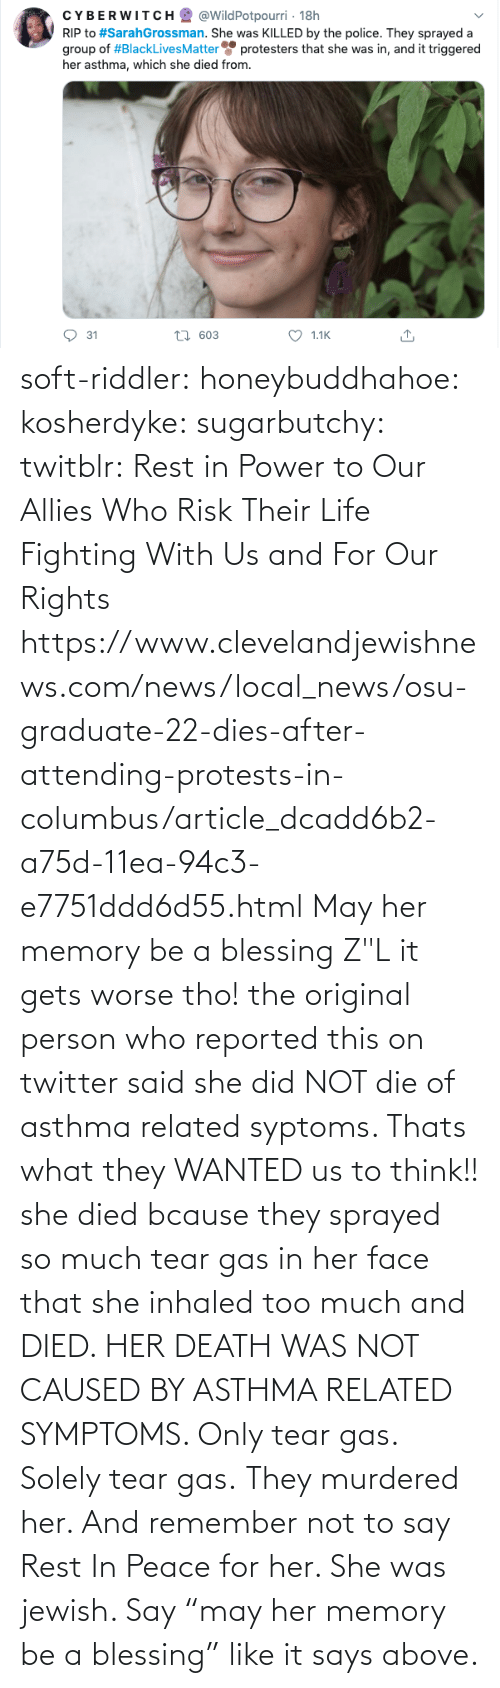 "allies: soft-riddler:  honeybuddhahoe:  kosherdyke:  sugarbutchy:  twitblr: Rest in Power to Our Allies Who Risk Their Life Fighting With Us and For Our Rights https://www.clevelandjewishnews.com/news/local_news/osu-graduate-22-dies-after-attending-protests-in-columbus/article_dcadd6b2-a75d-11ea-94c3-e7751ddd6d55.html    May her memory be a blessing Z""L  it gets worse tho! the original person who reported this on twitter said she did NOT die of asthma related syptoms. Thats what they WANTED us to think!! she died bcause they sprayed so much tear gas in her face that she inhaled too much and DIED. HER DEATH WAS NOT CAUSED BY ASTHMA RELATED SYMPTOMS. Only tear gas. Solely tear gas. They murdered her.     And remember not to say Rest In Peace for her. She was jewish. Say ""may her memory be a blessing"" like it says above."